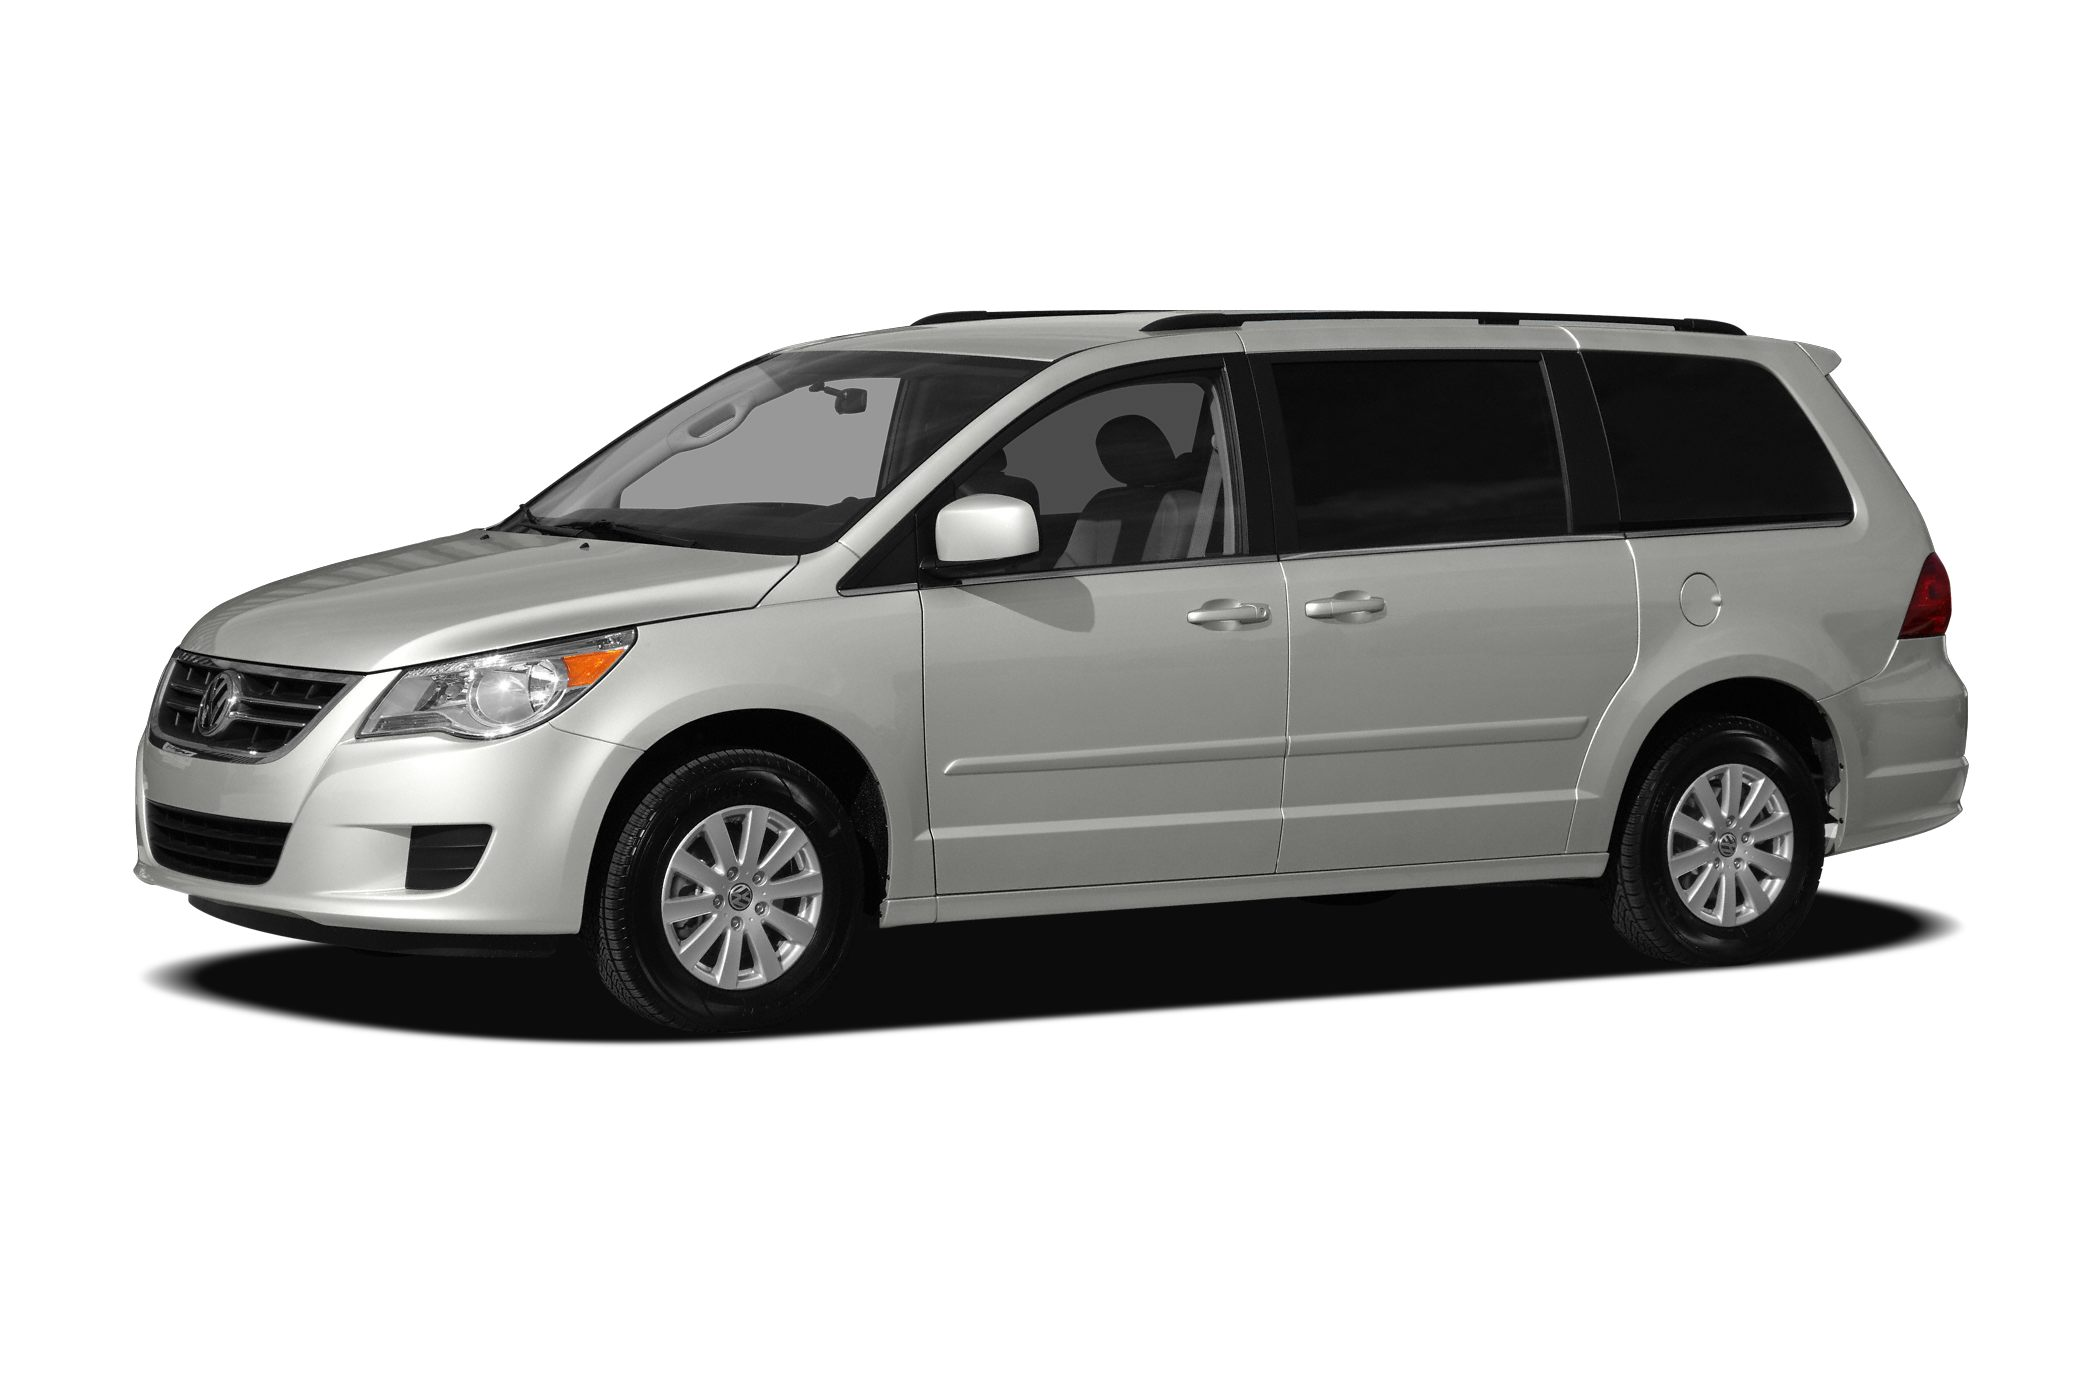 2010 Volkswagen Routan SE Minivan for sale in Lebanon for $14,777 with 61,882 miles.